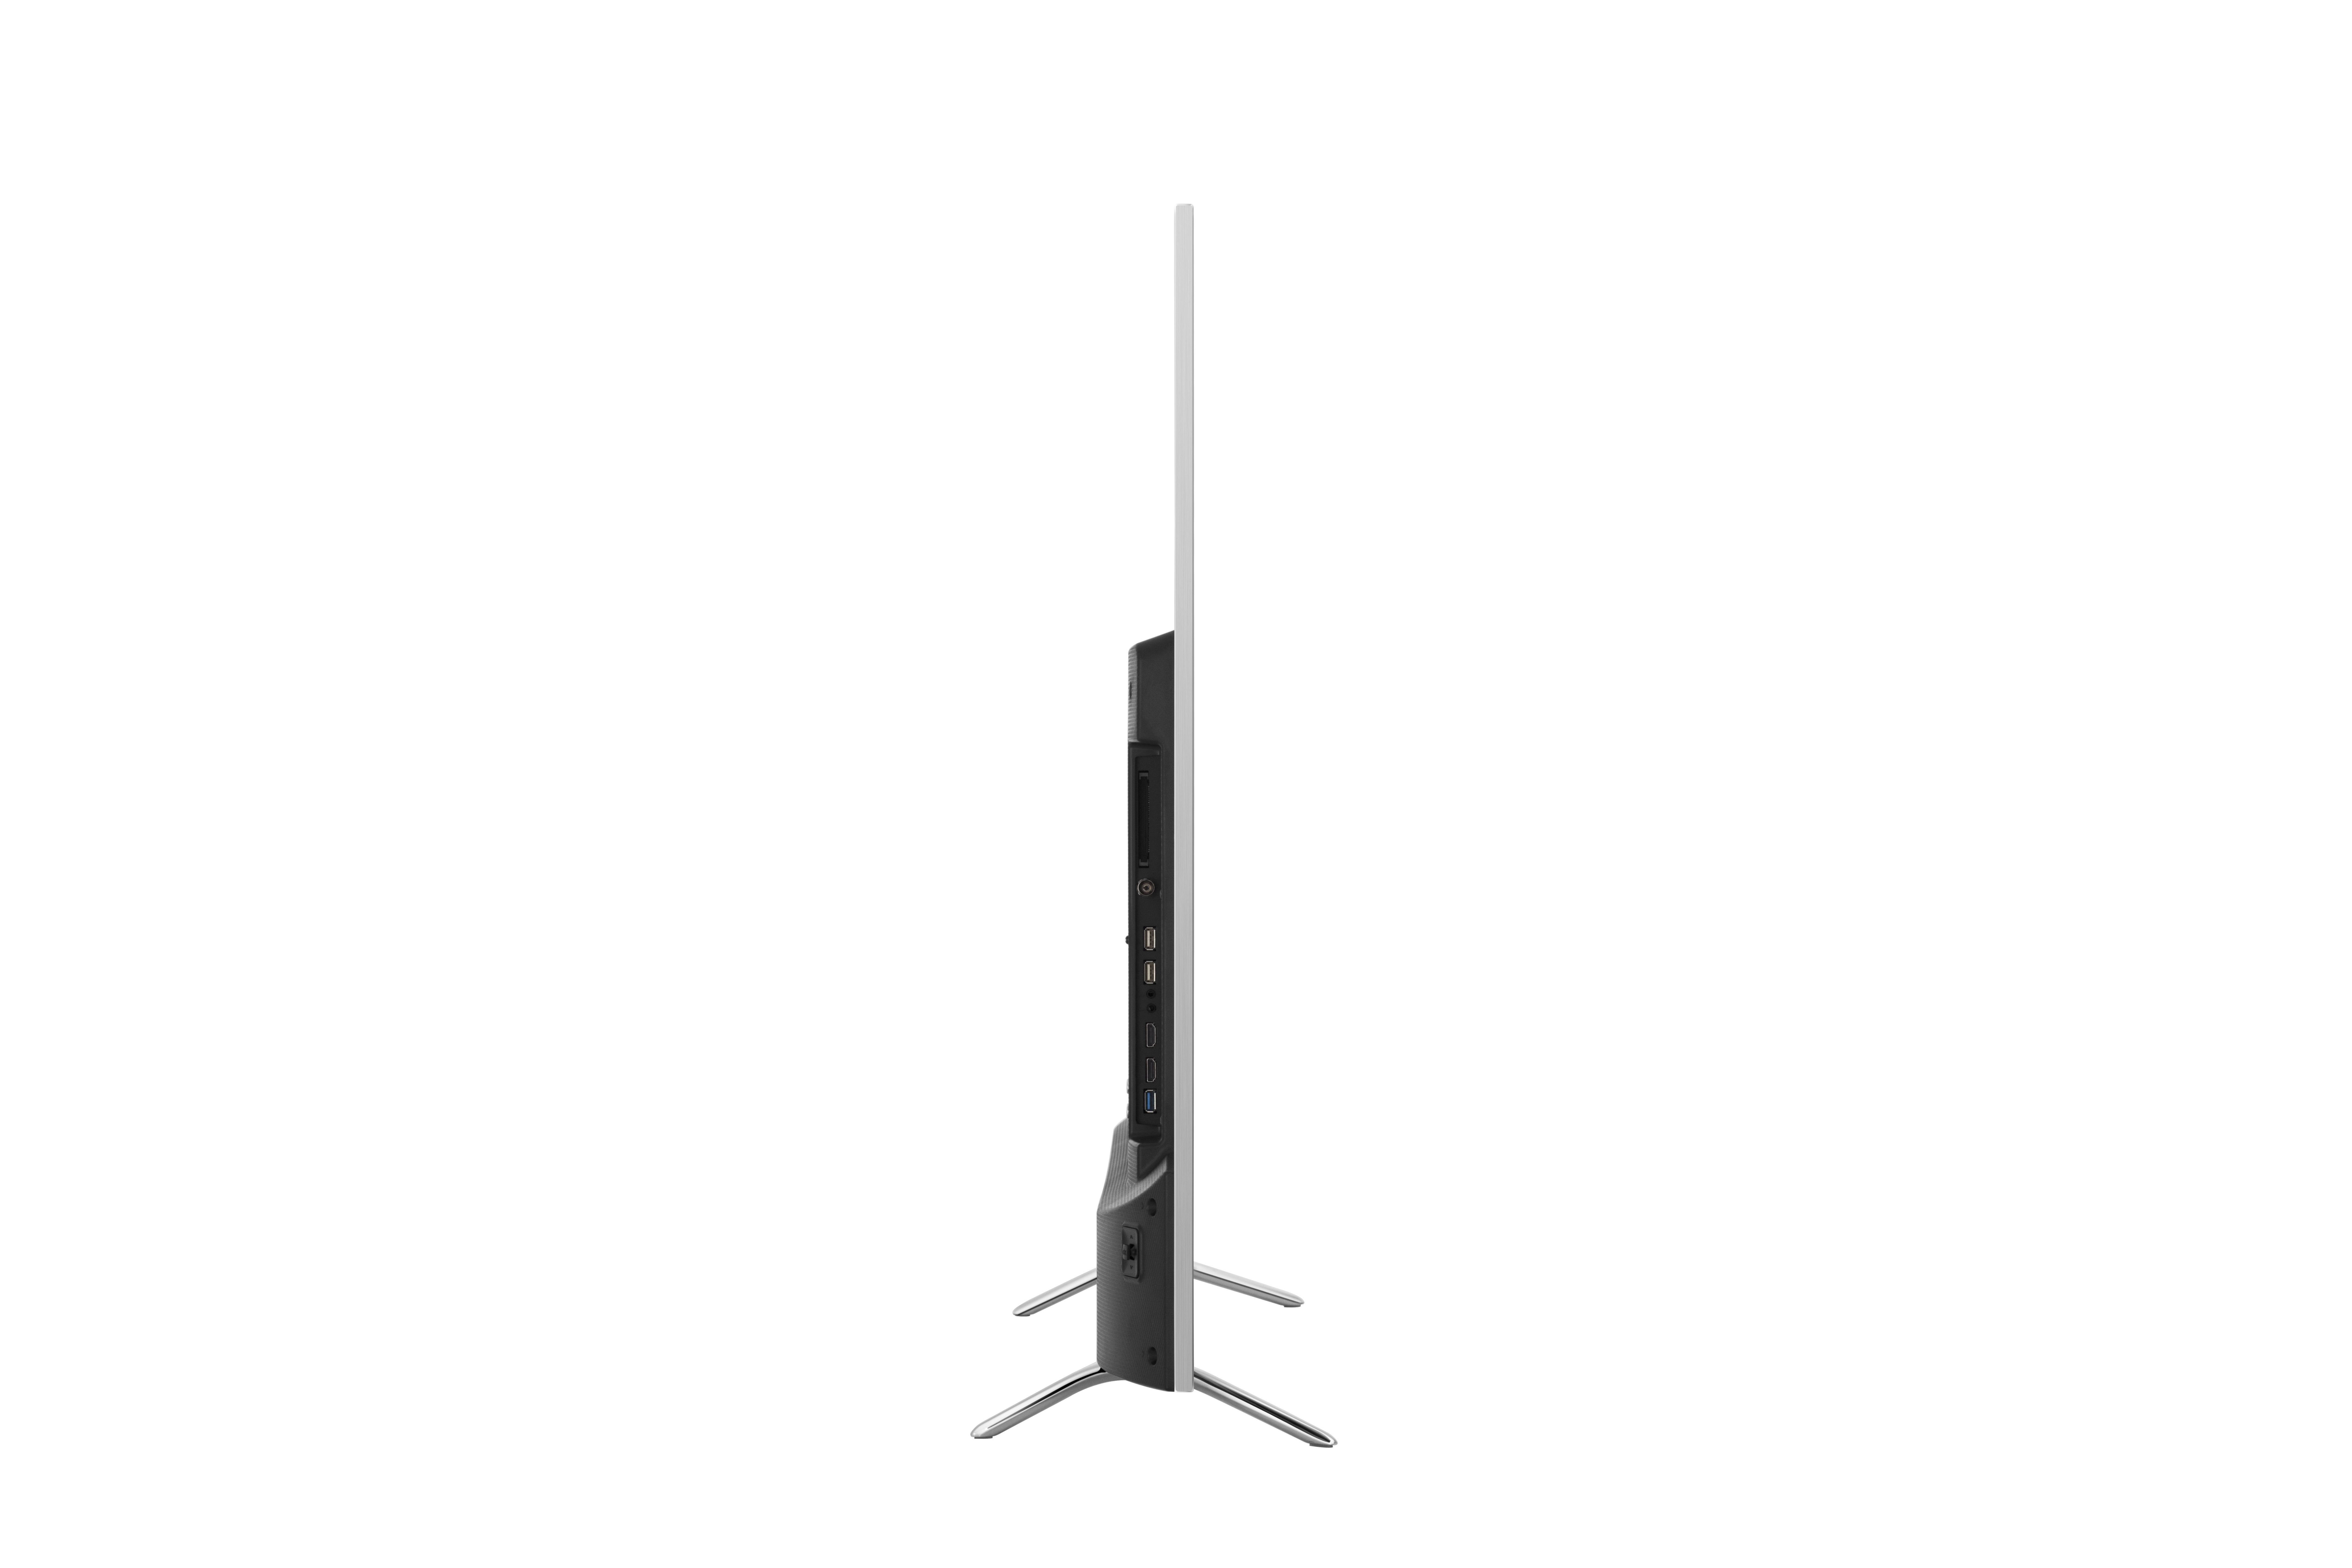 new hisense 50n7 50 inch 127cm smart 4k ultra hd led lcd tv 1 picclick au. Black Bedroom Furniture Sets. Home Design Ideas